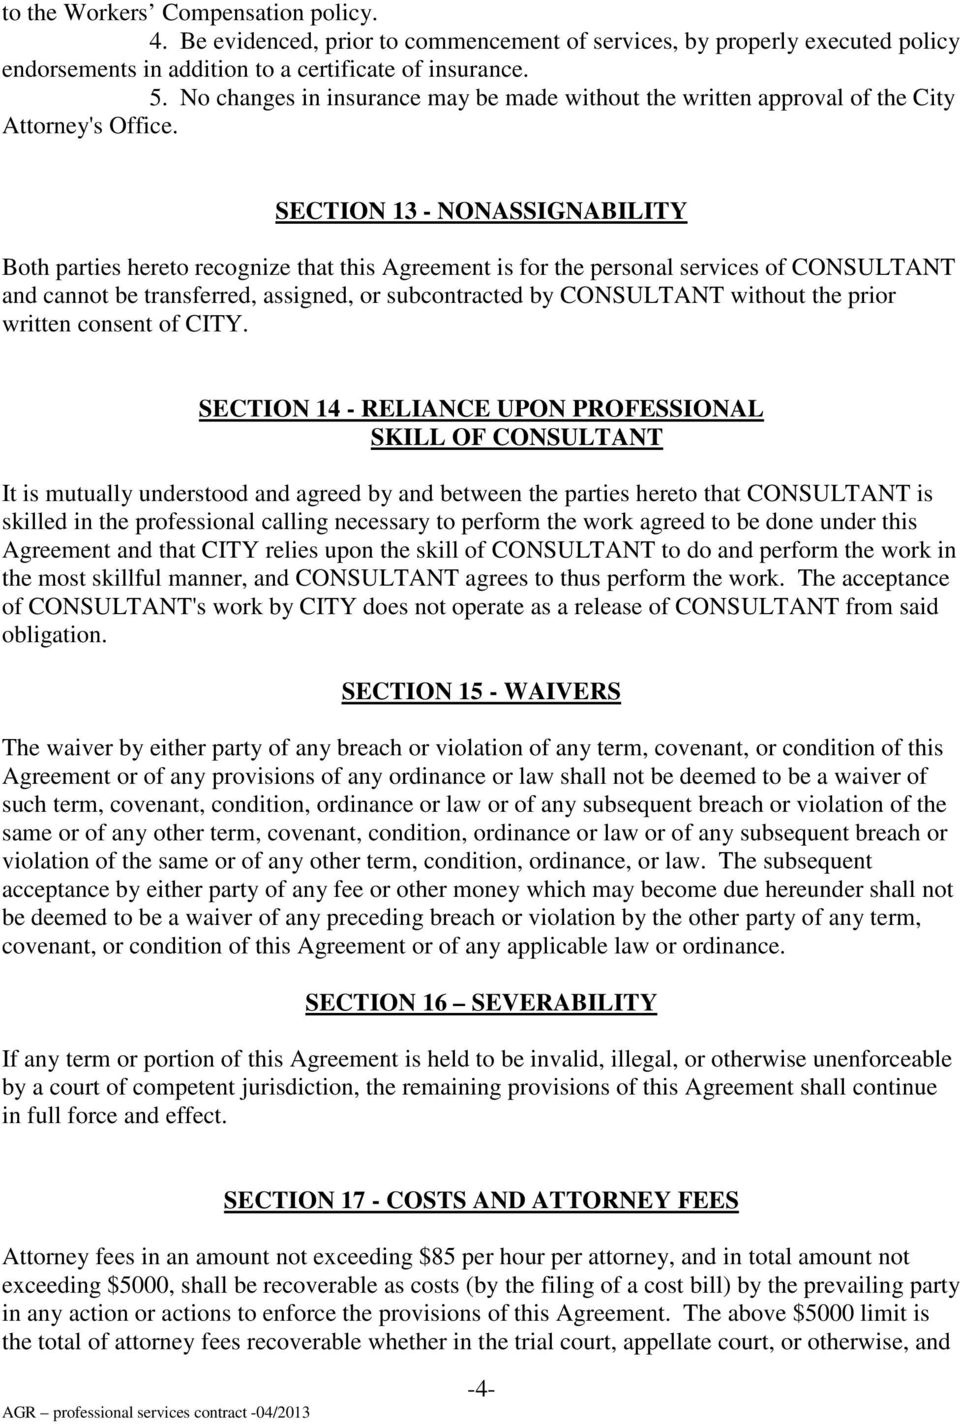 SECTION 13 - NONASSIGNABILITY Both parties hereto recognize that this Agreement is for the personal services of CONSULTANT and cannot be transferred, assigned, or subcontracted by CONSULTANT without